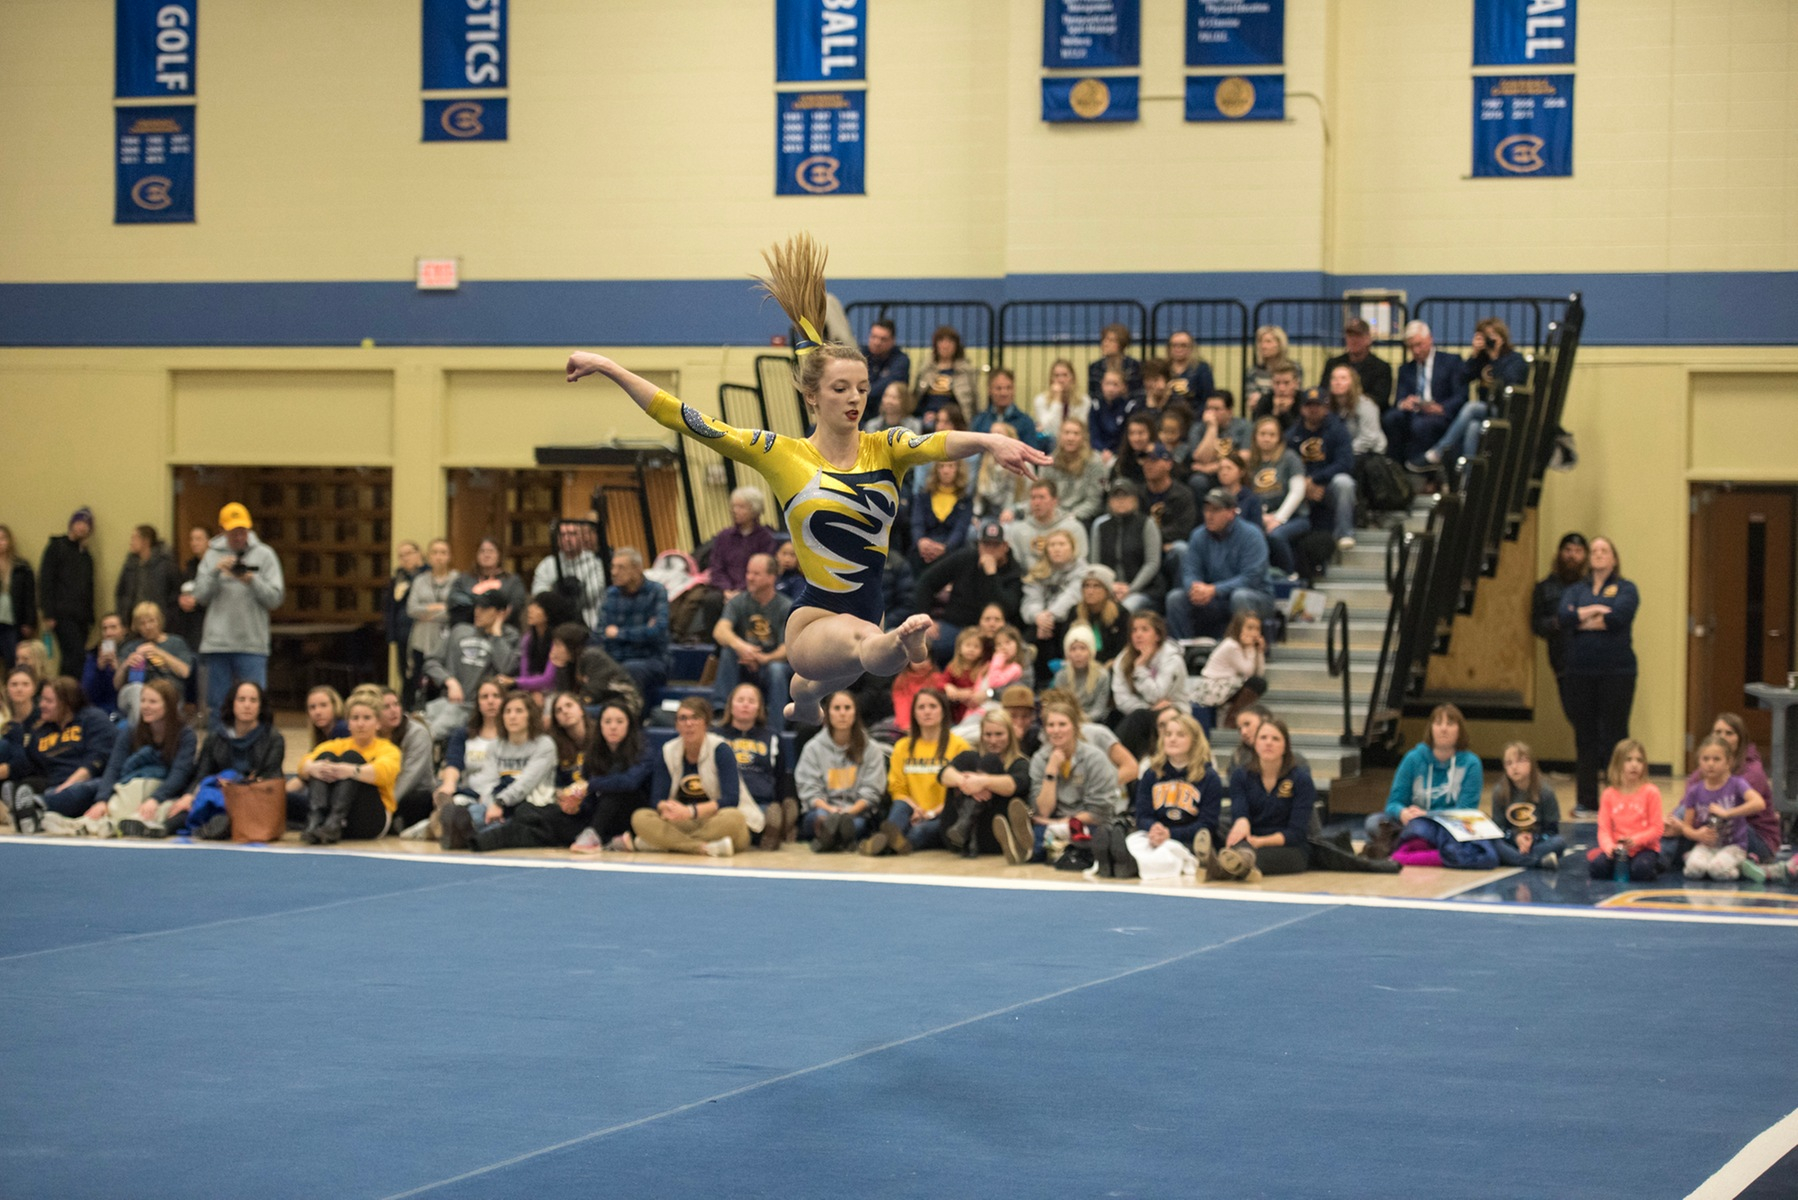 Photo by Matt Schrupp, UWEC Photo